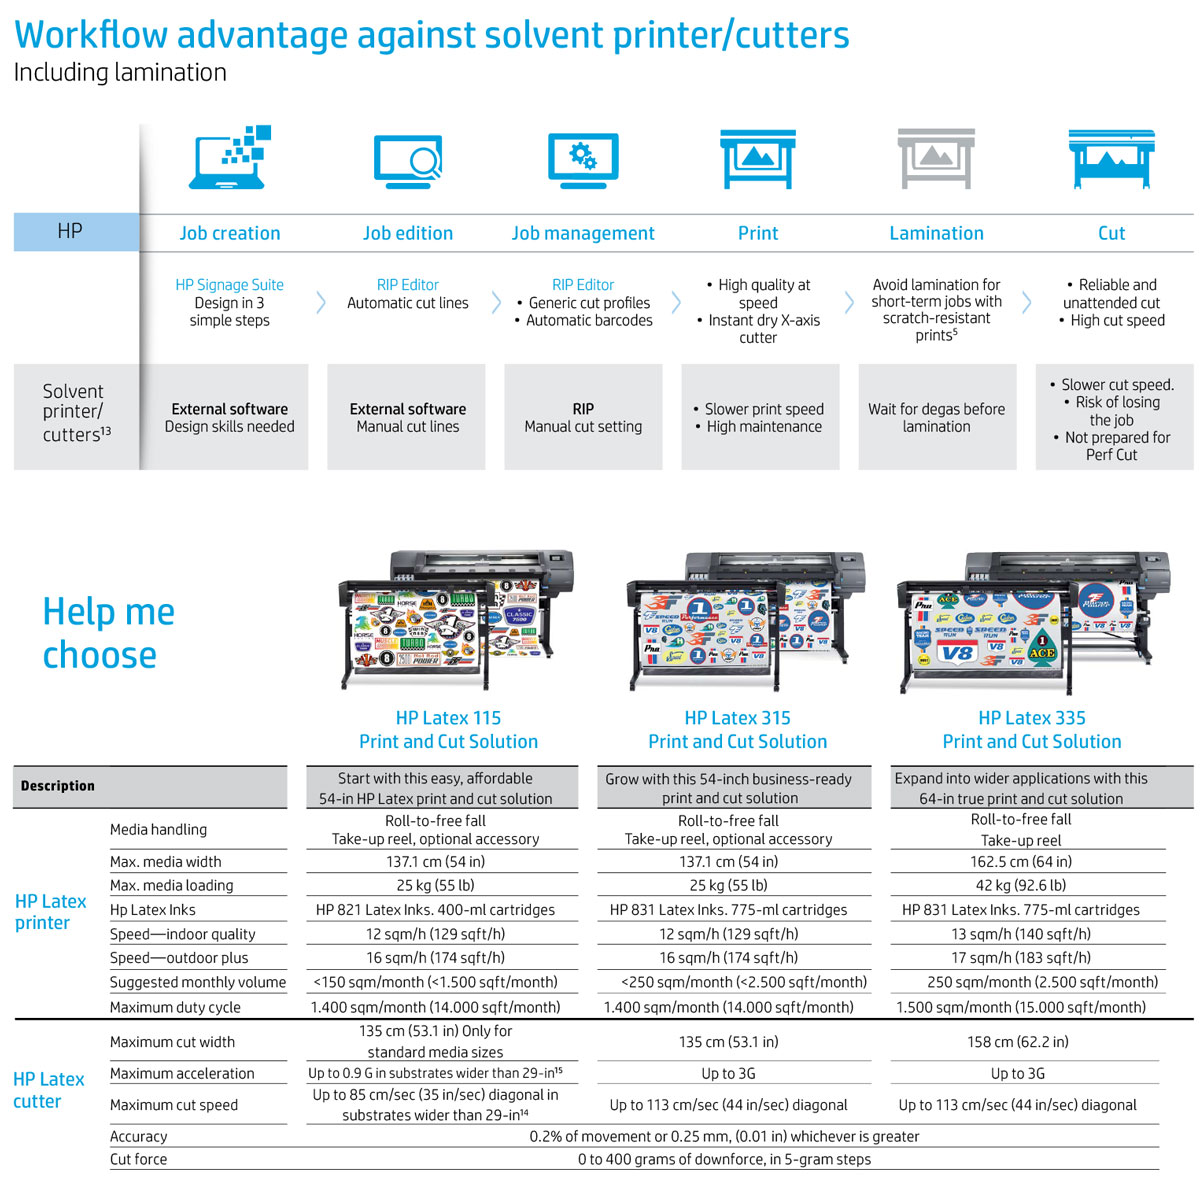 hp latex 335 print and cut solution comparison to 315 and 115 and eco solvent printer workflow